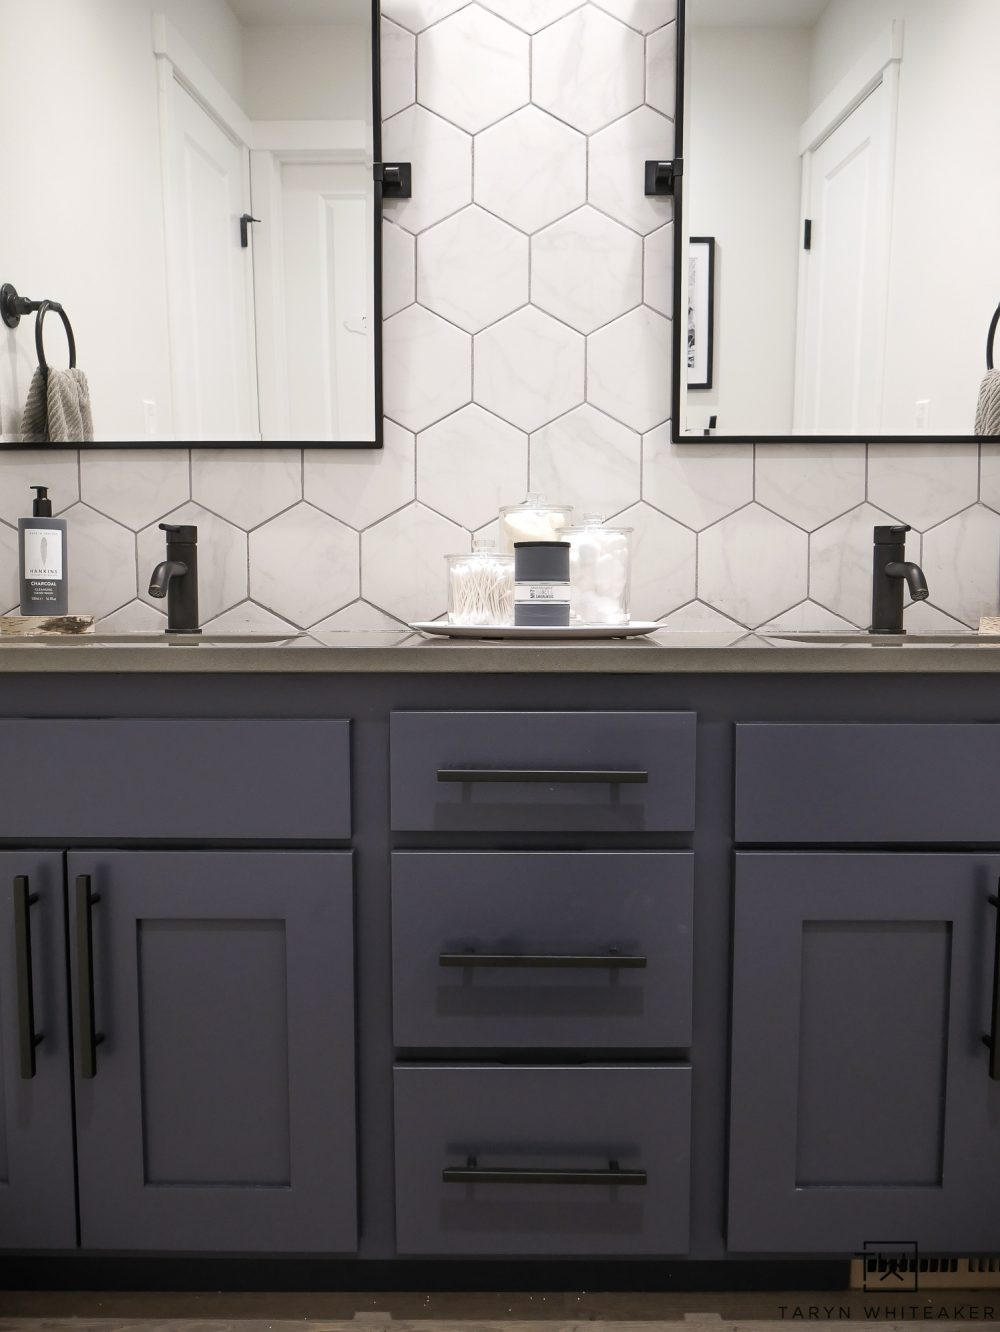 You have to see this bathroom makeover! From basic builder grade to a cool industrial modern bathroom, love the black pivot mirrors paired with the hexagon tile backsplash and charcoal blue cabinets!